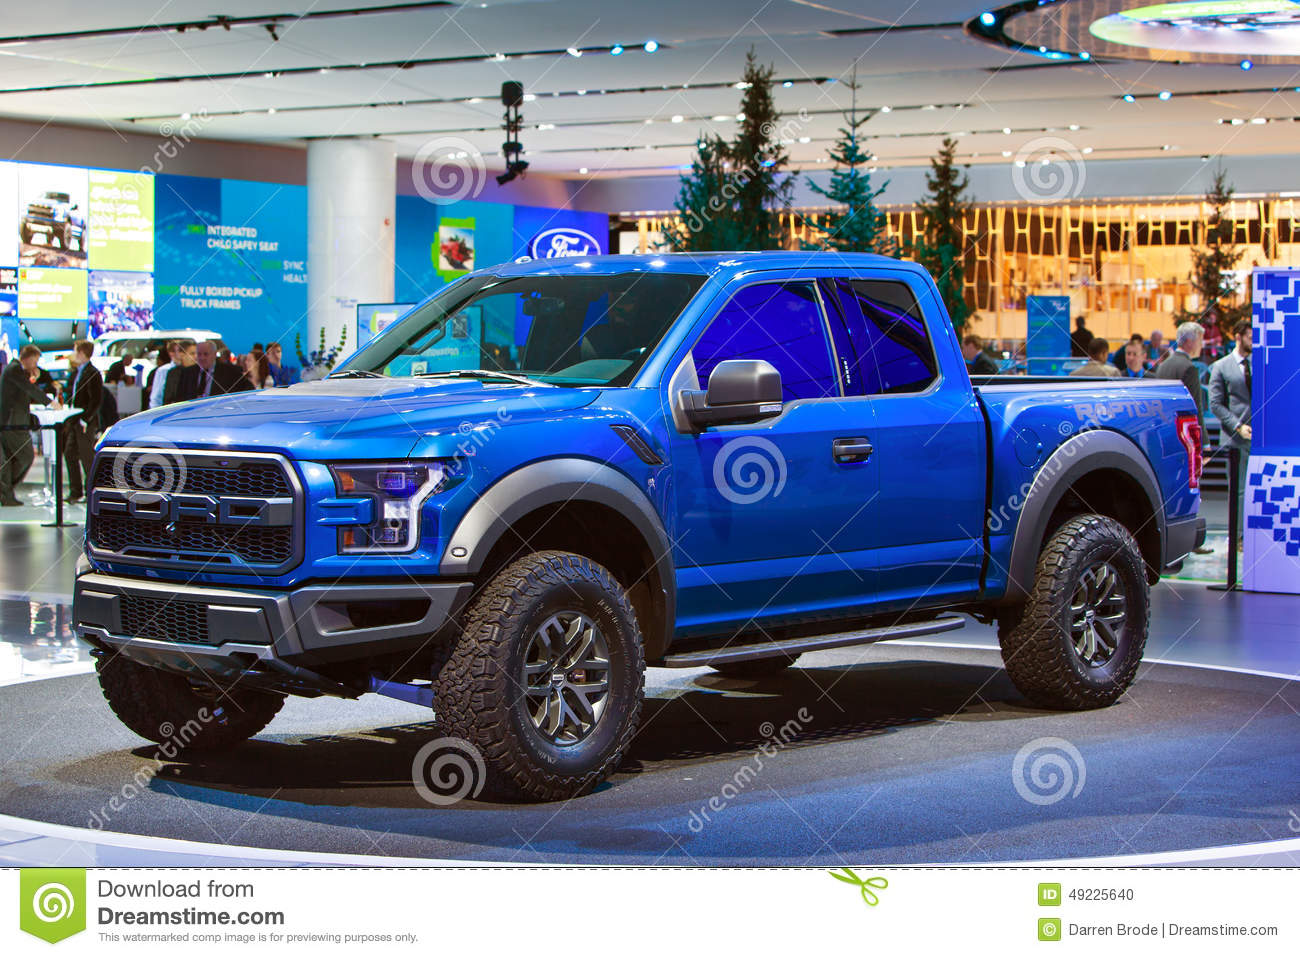 salon de l 39 auto 2015 de ford raptor pickup truck detroit image ditorial image 49225640. Black Bedroom Furniture Sets. Home Design Ideas